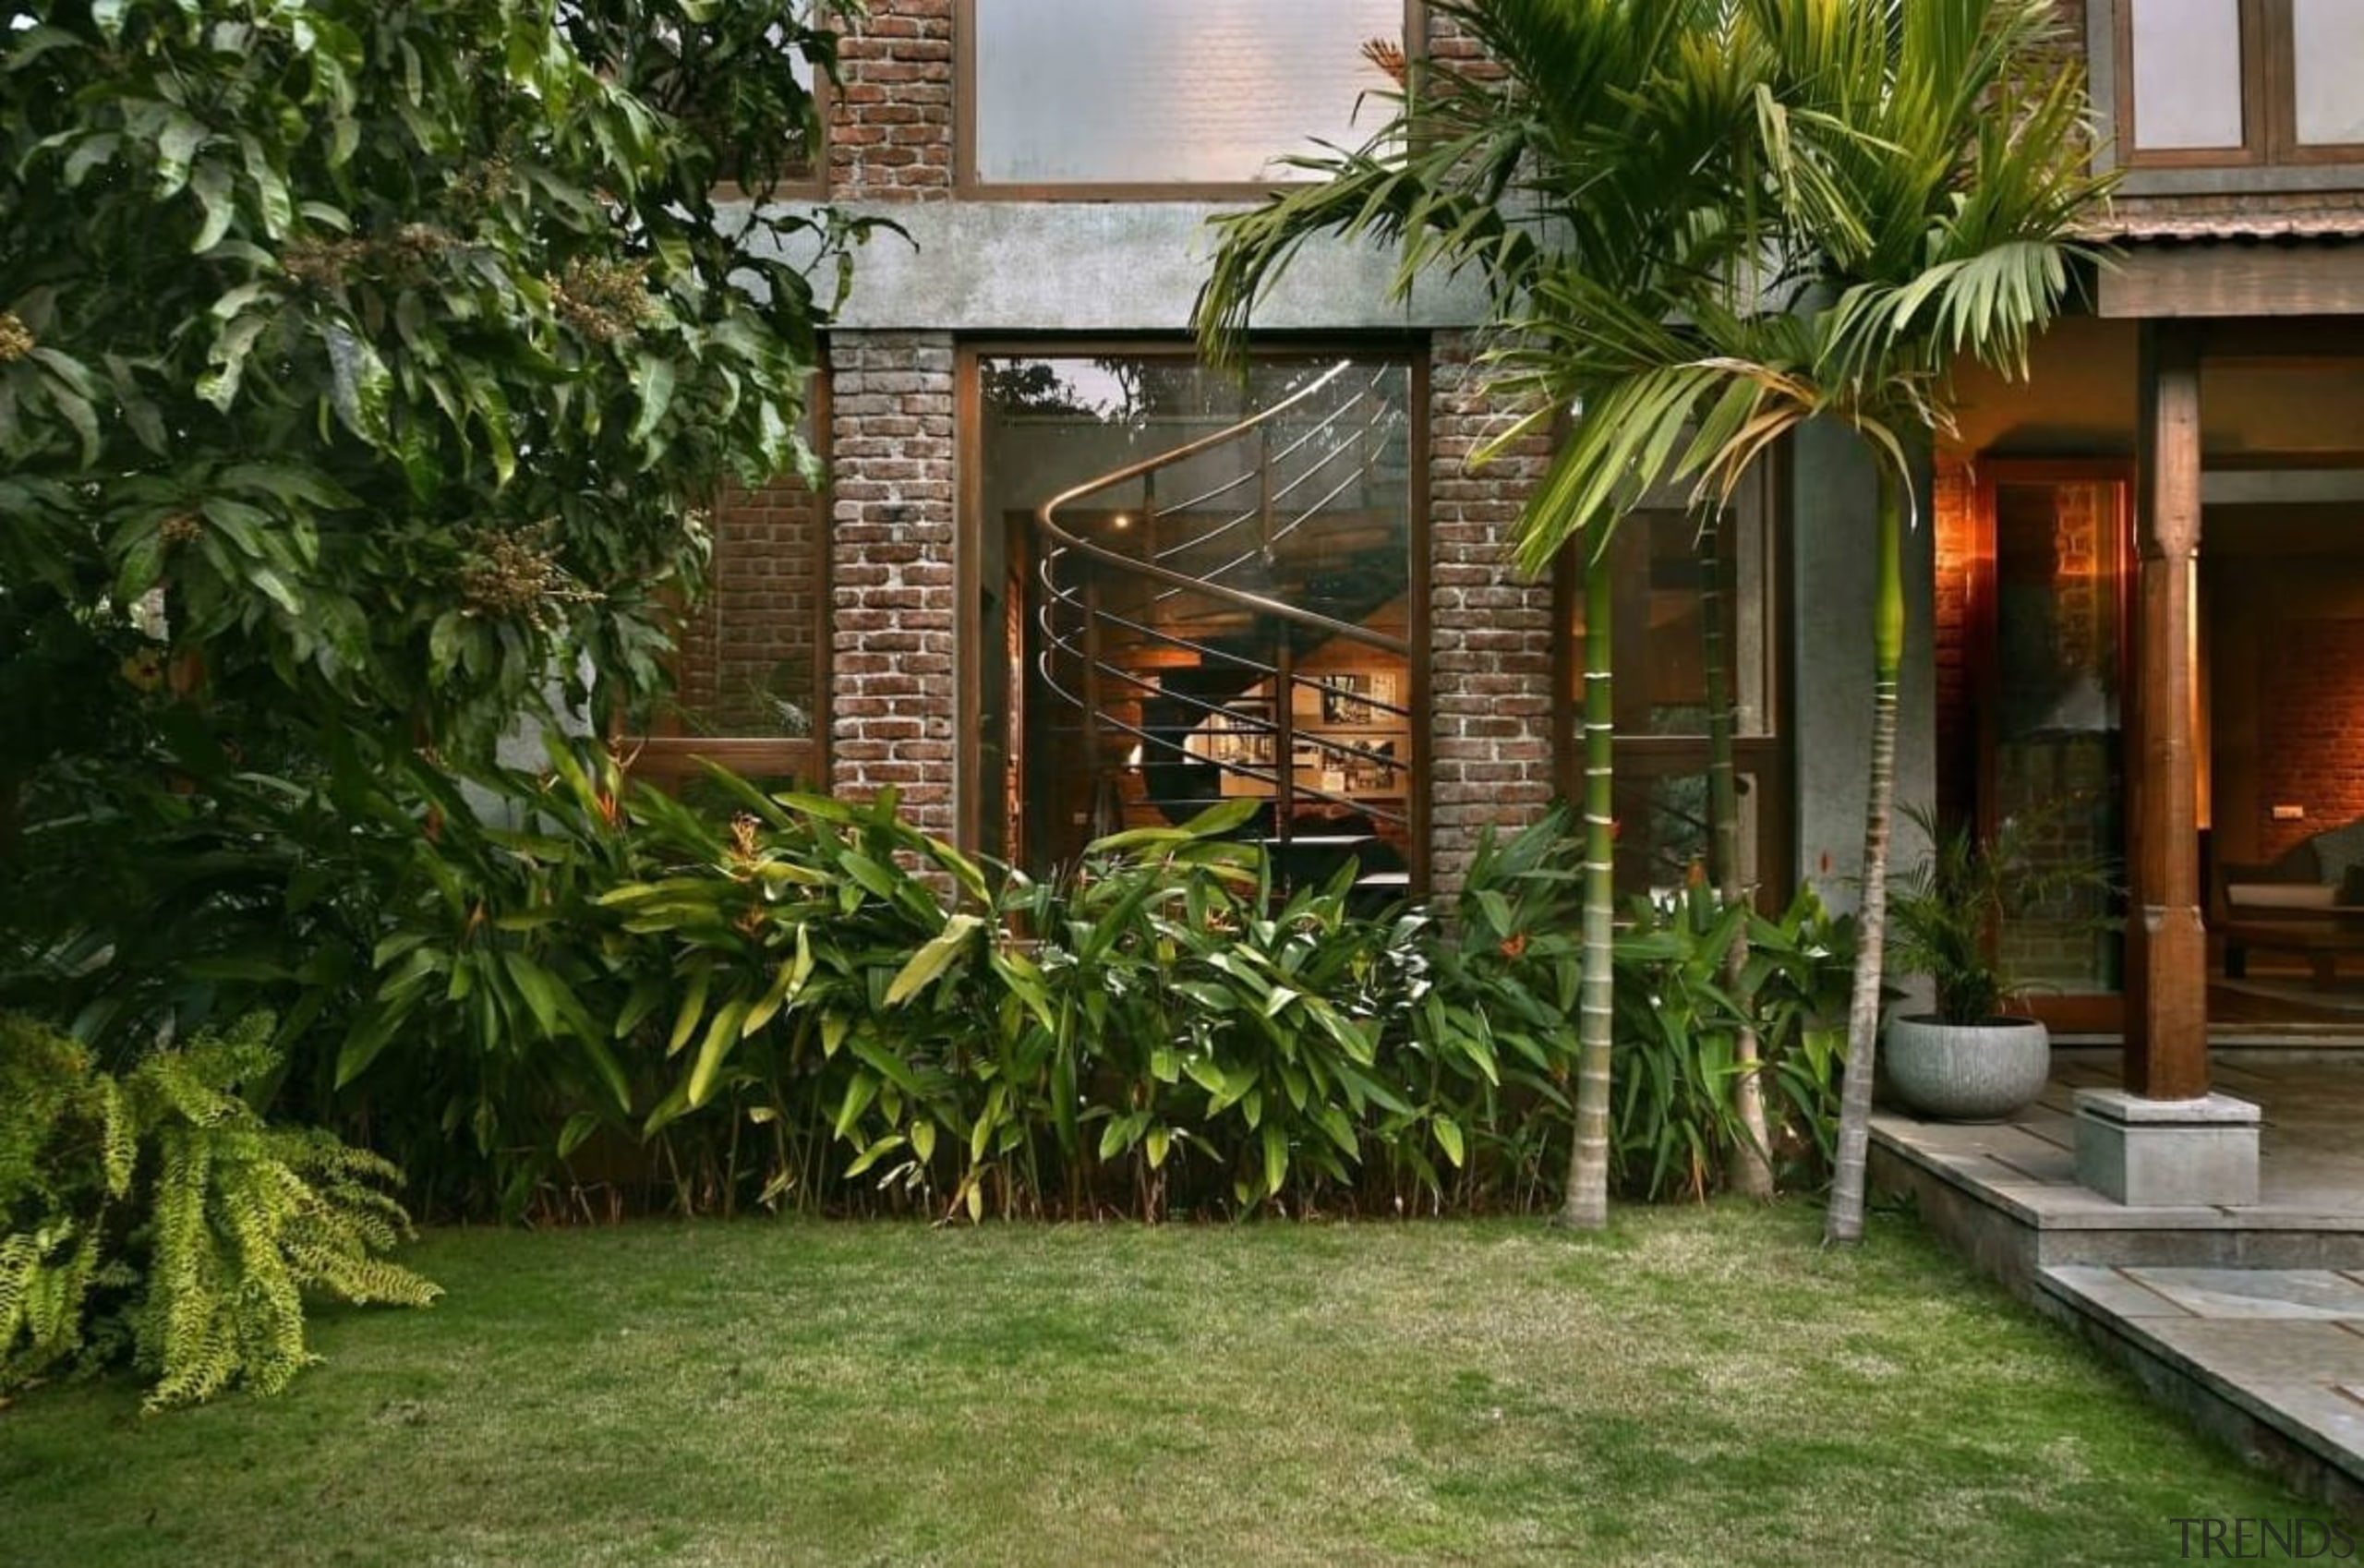 See the home here arecales, backyard, courtyard, estate, home, house, outdoor structure, palm tree, plant, property, real estate, brown